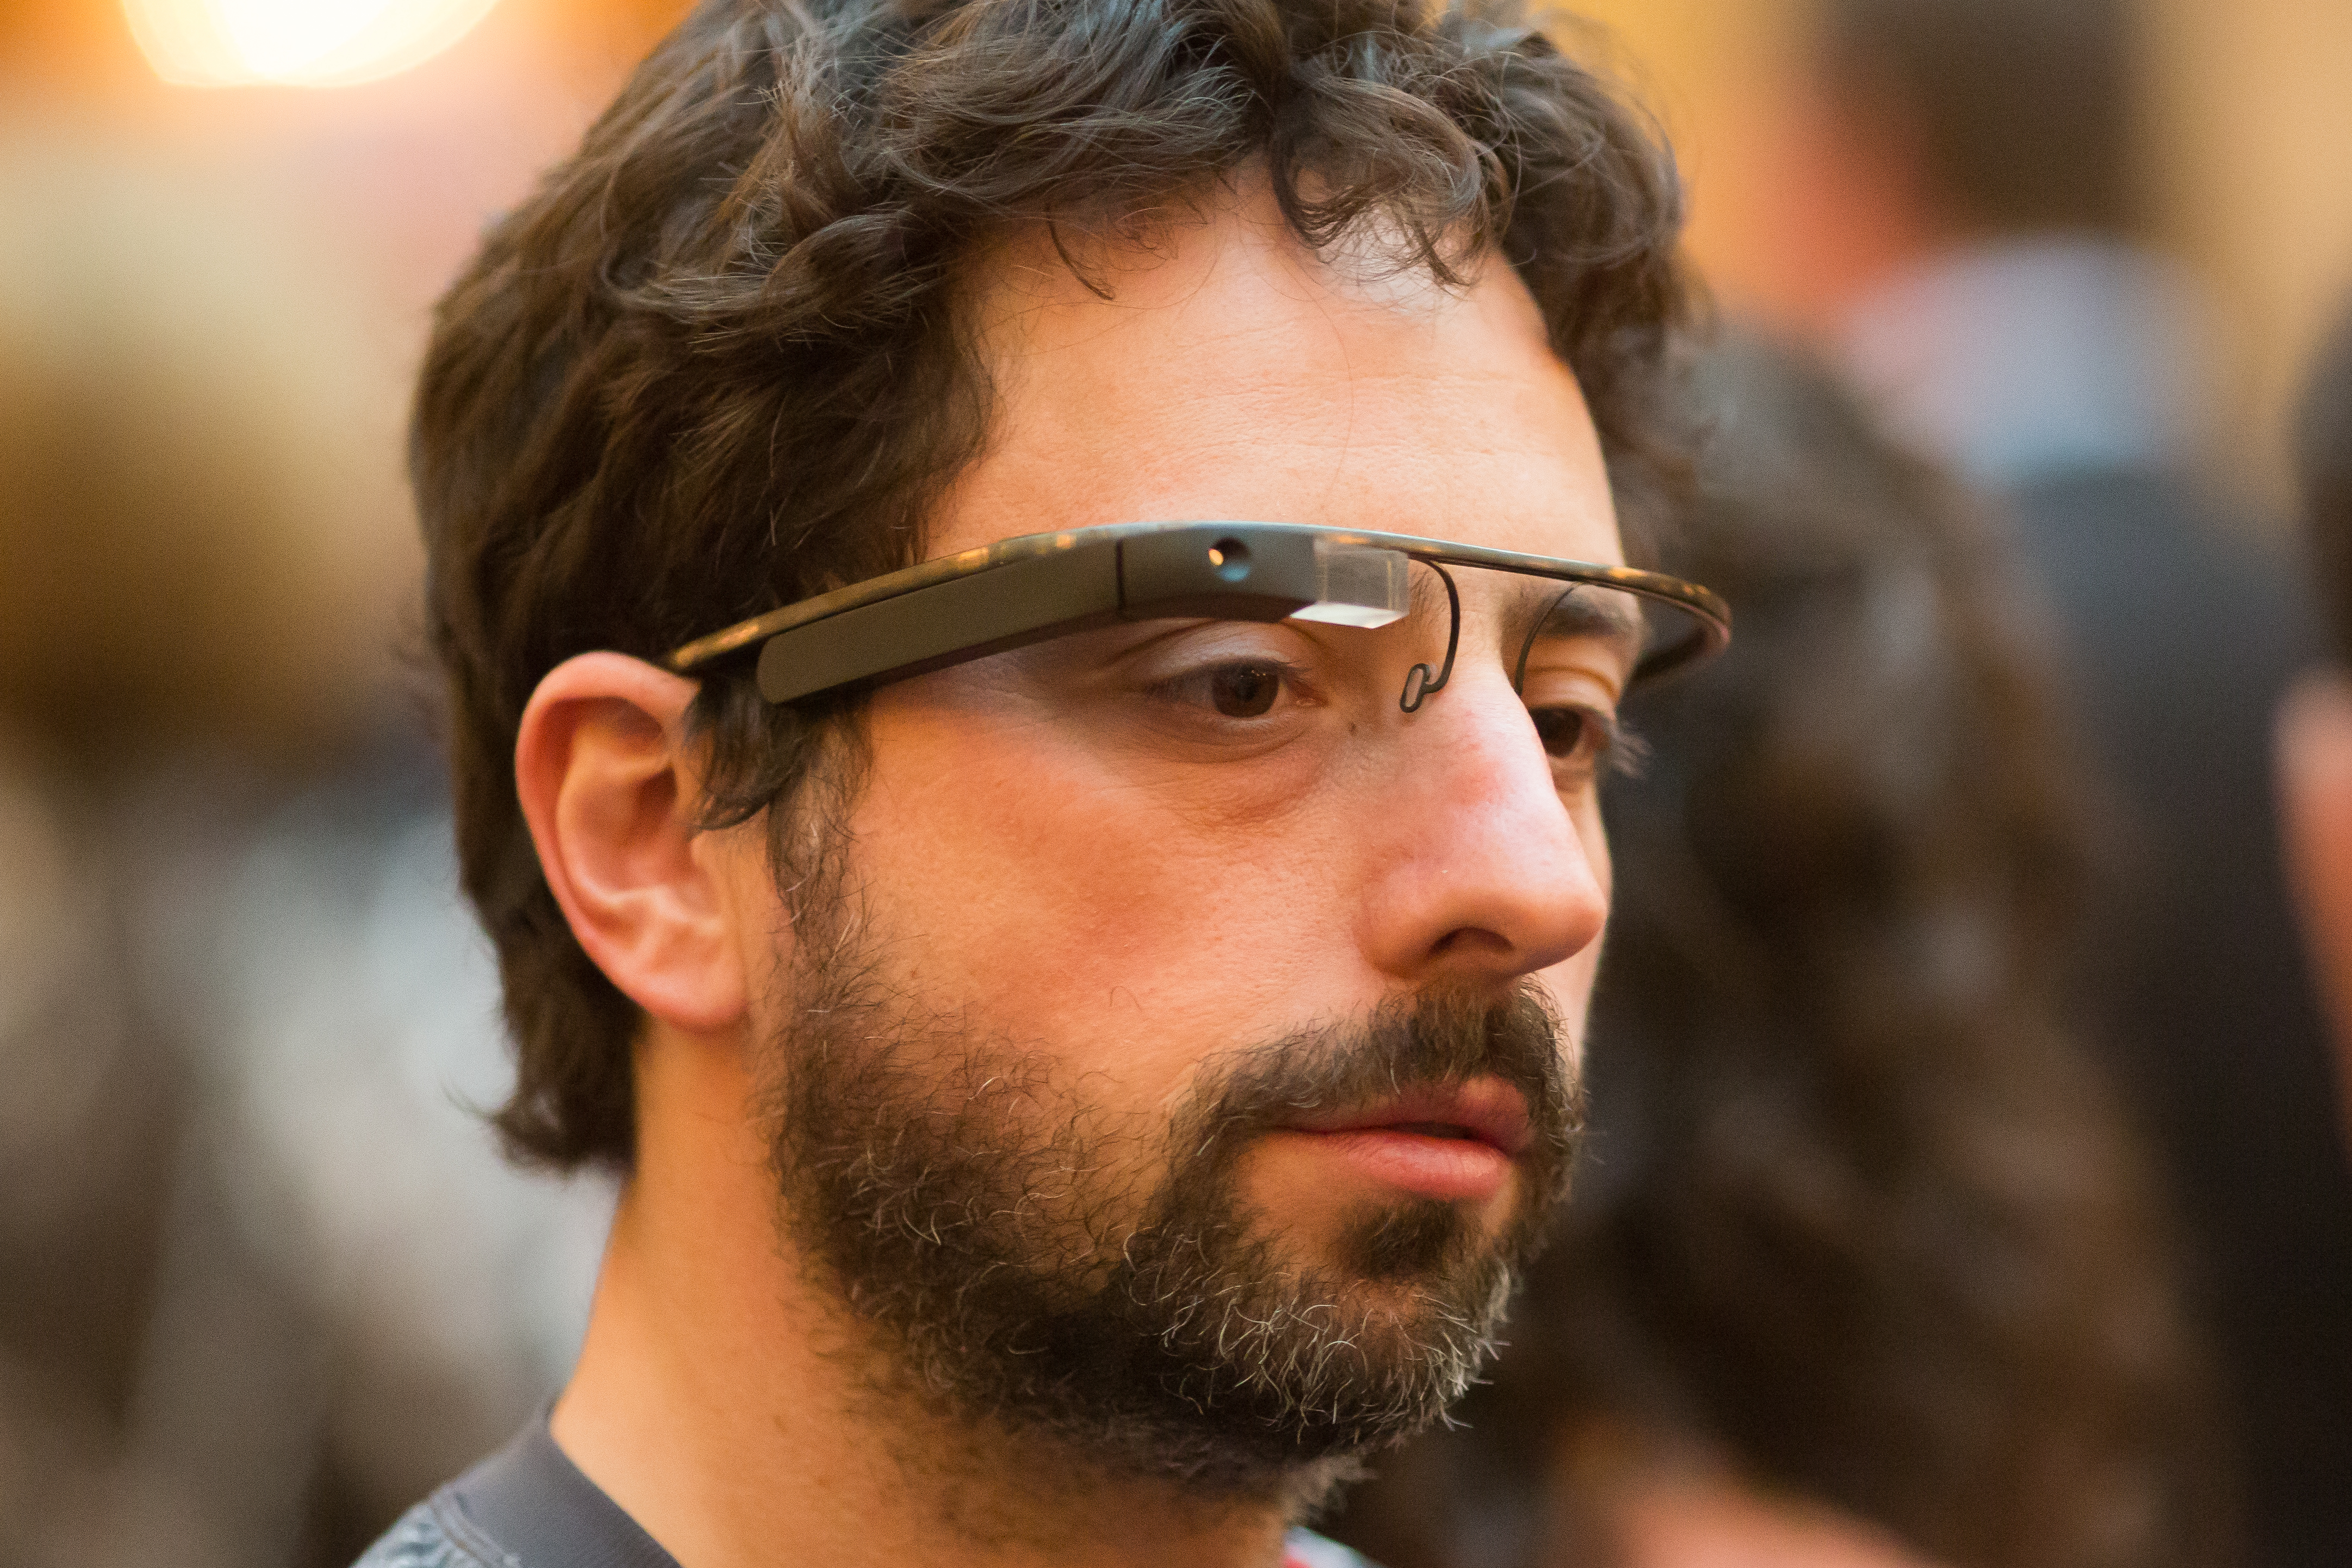 Google co-founder Sergey Brin sports augmented reality glasses at a charity event yesterday.